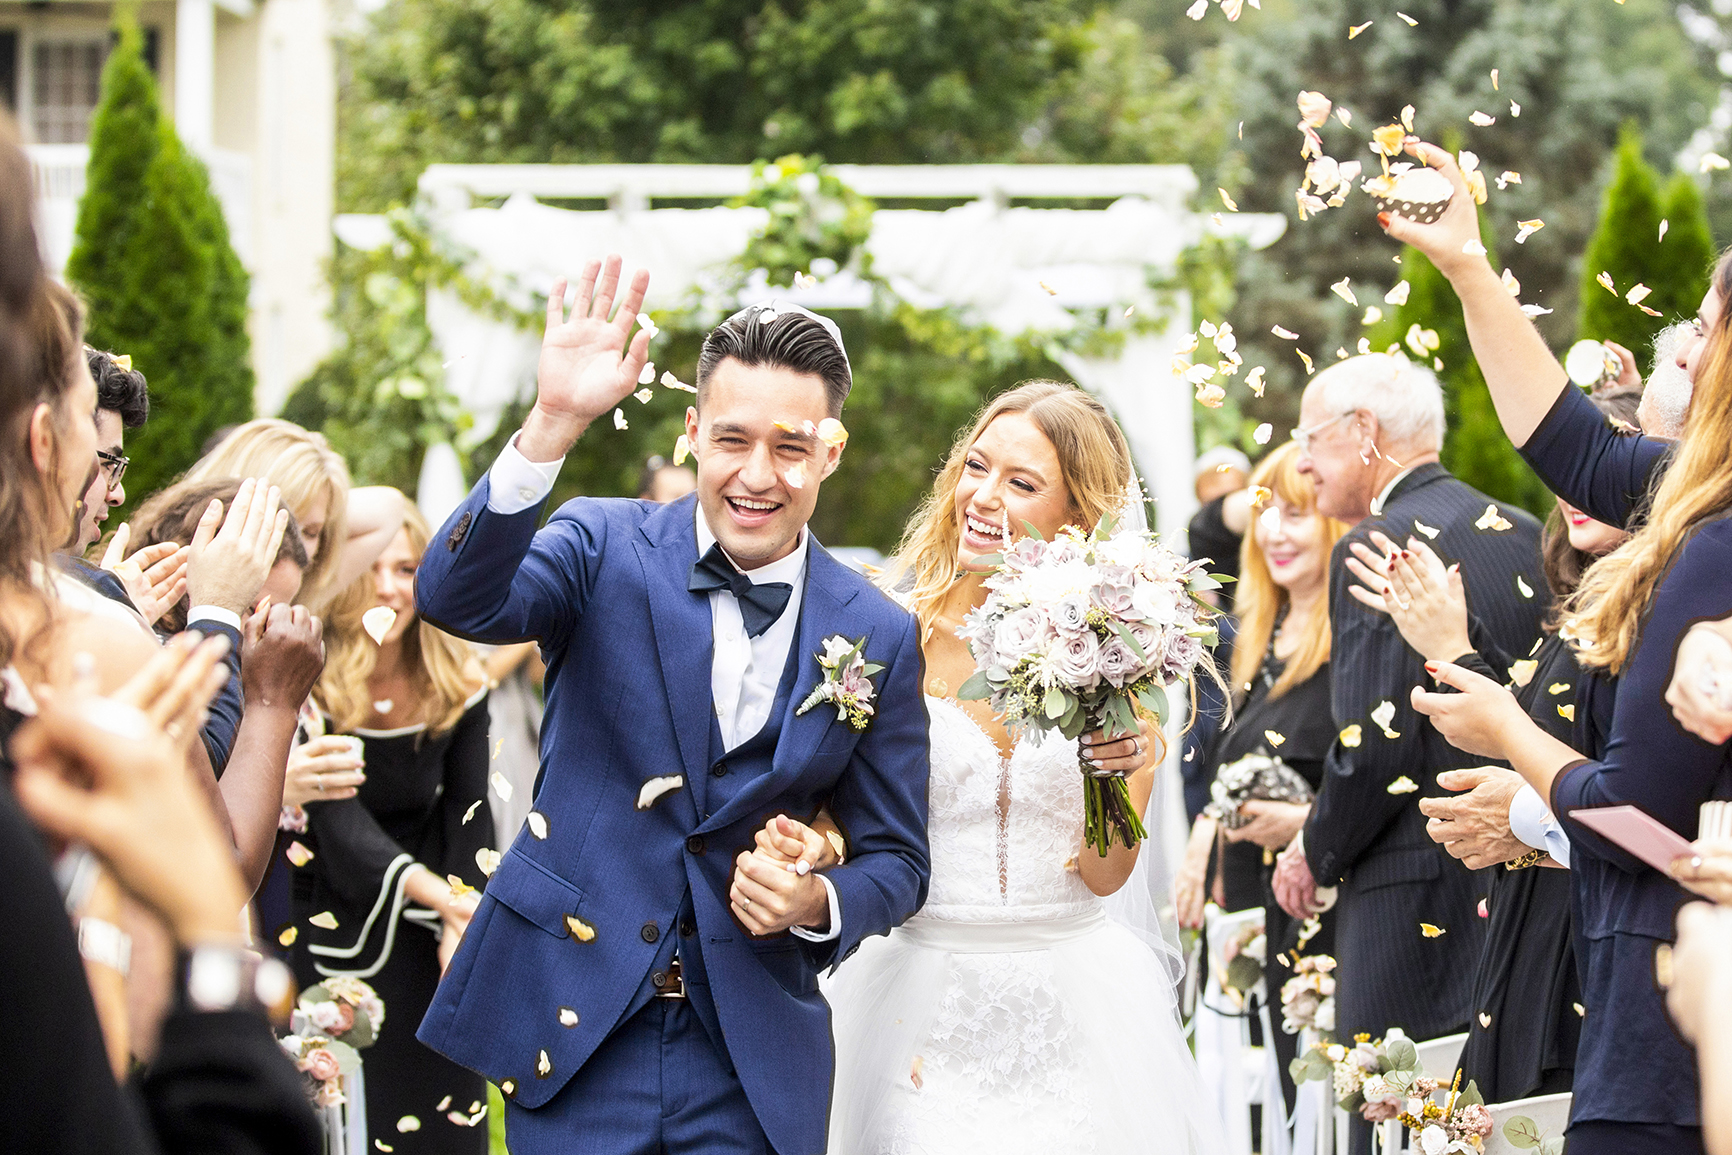 Outdoor recessional to rose petals - photo by Anna Schmidt Photography